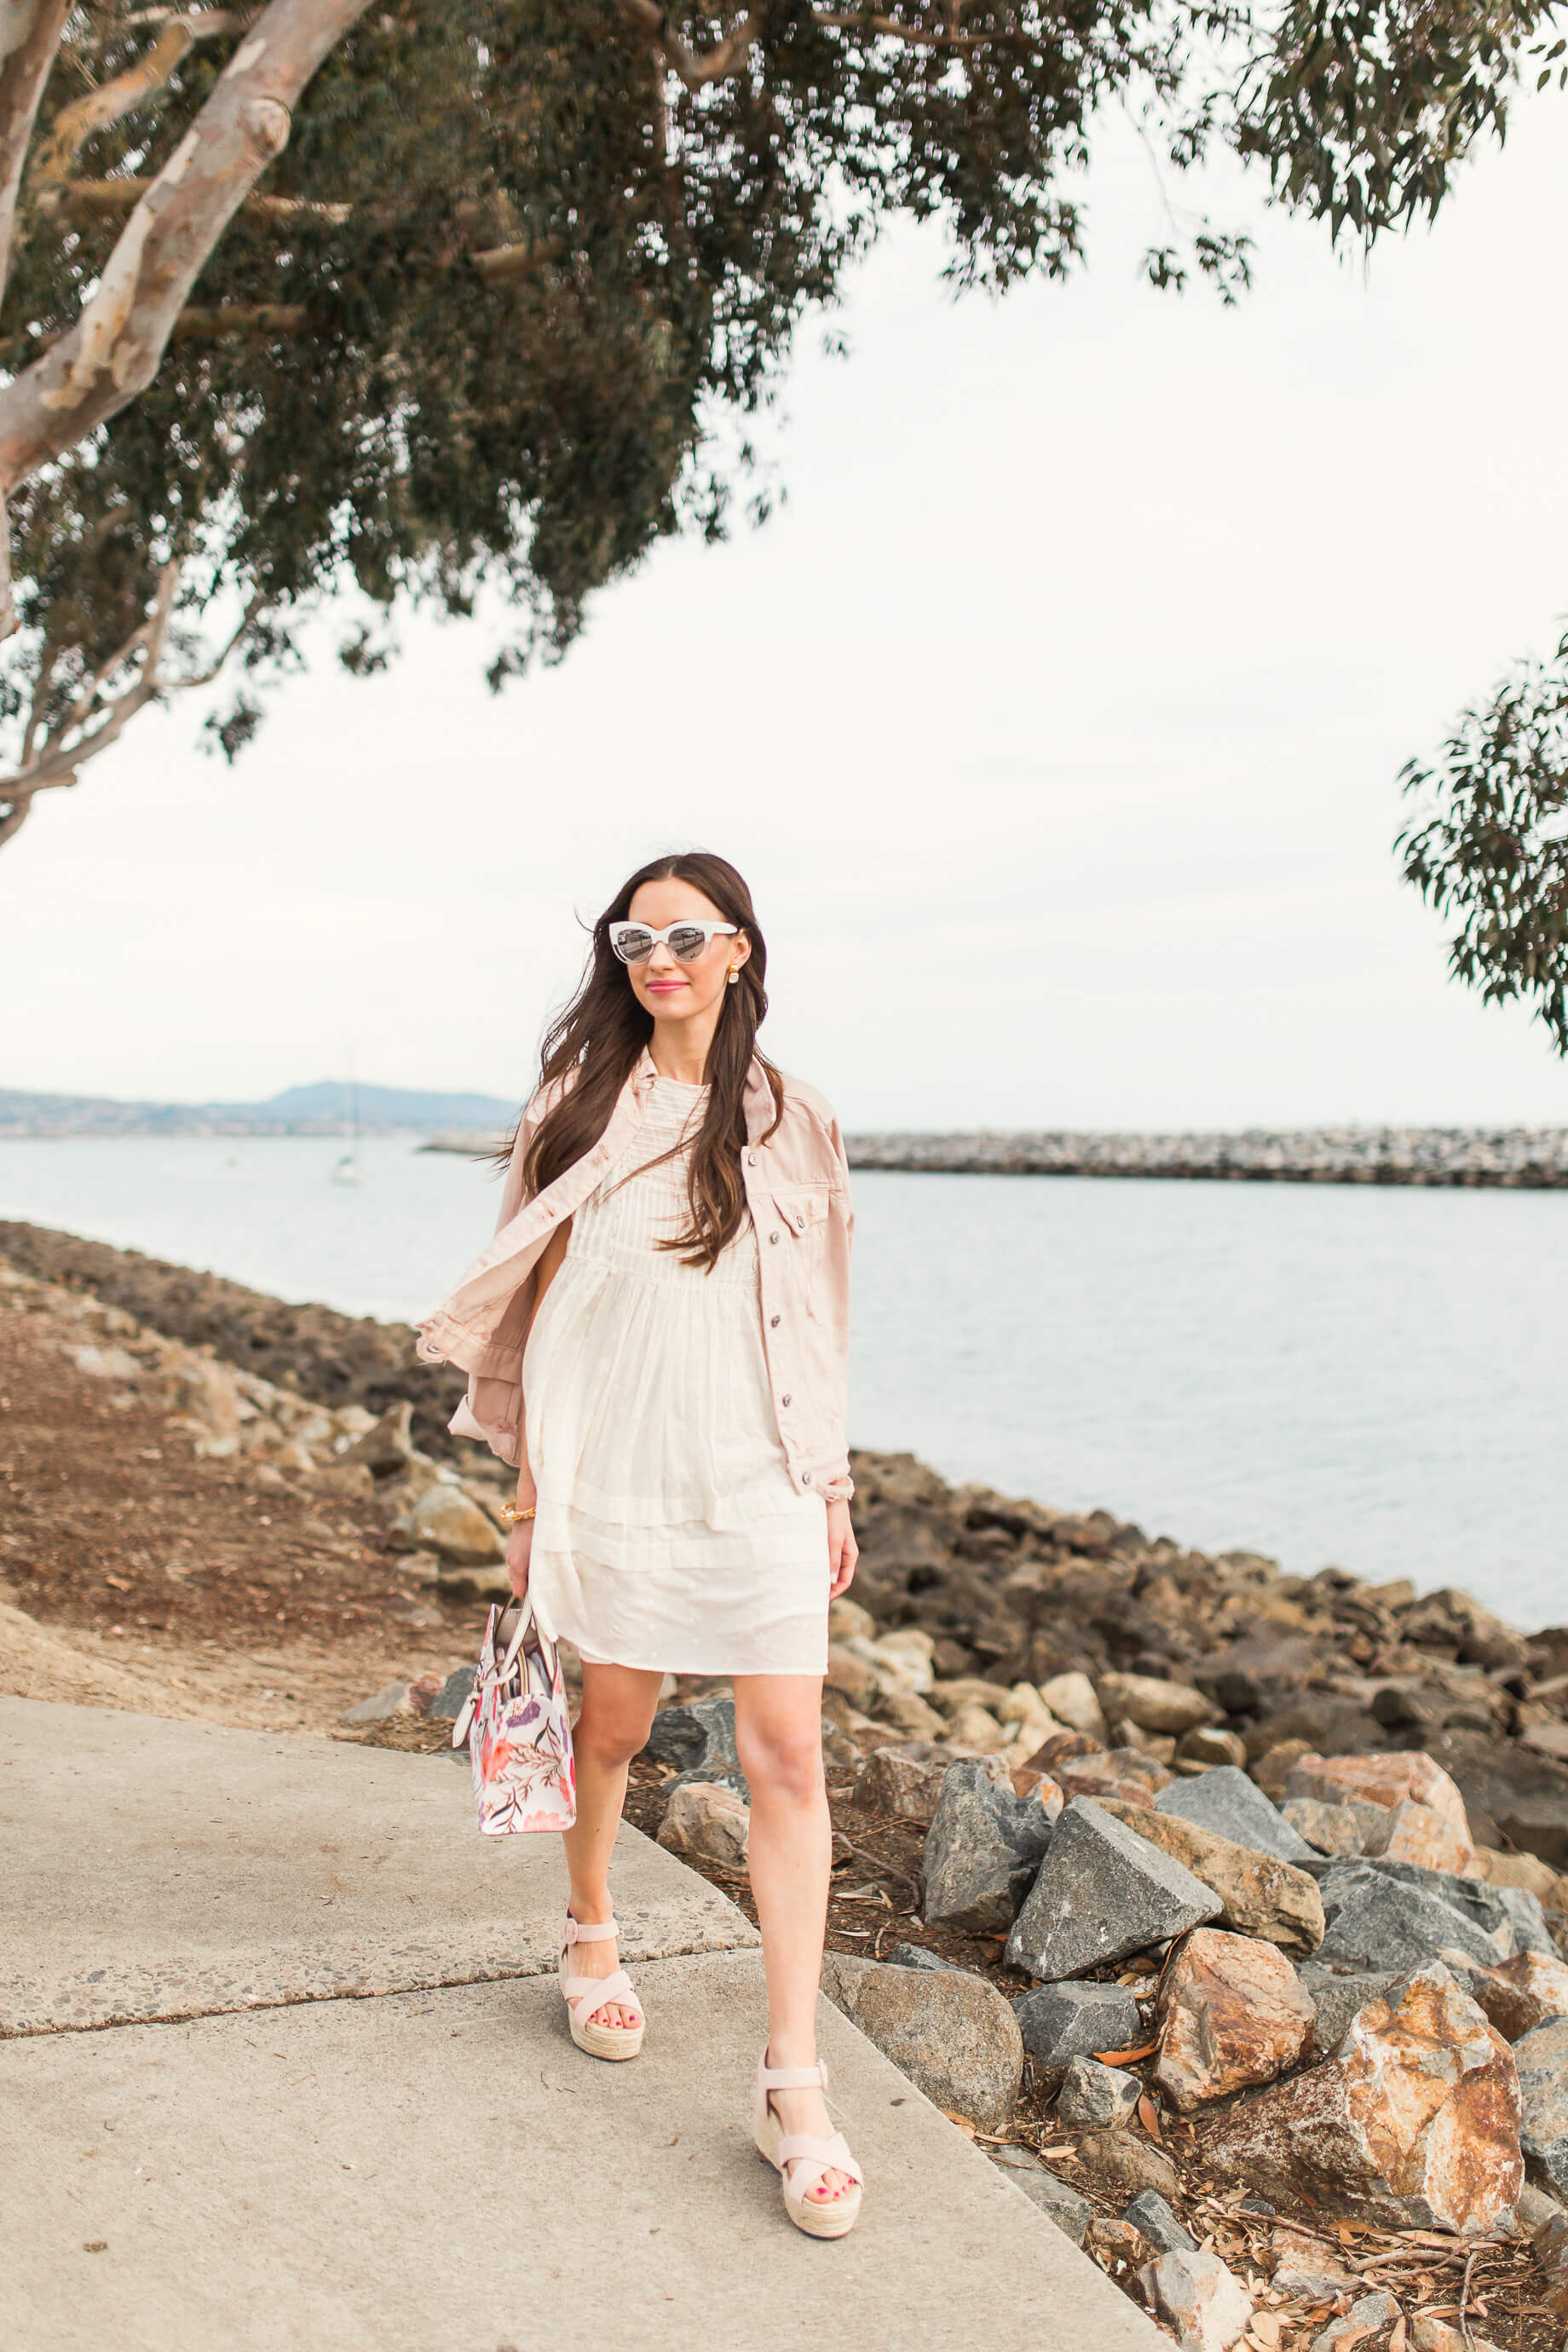 the prefect eyelet dress for spring!